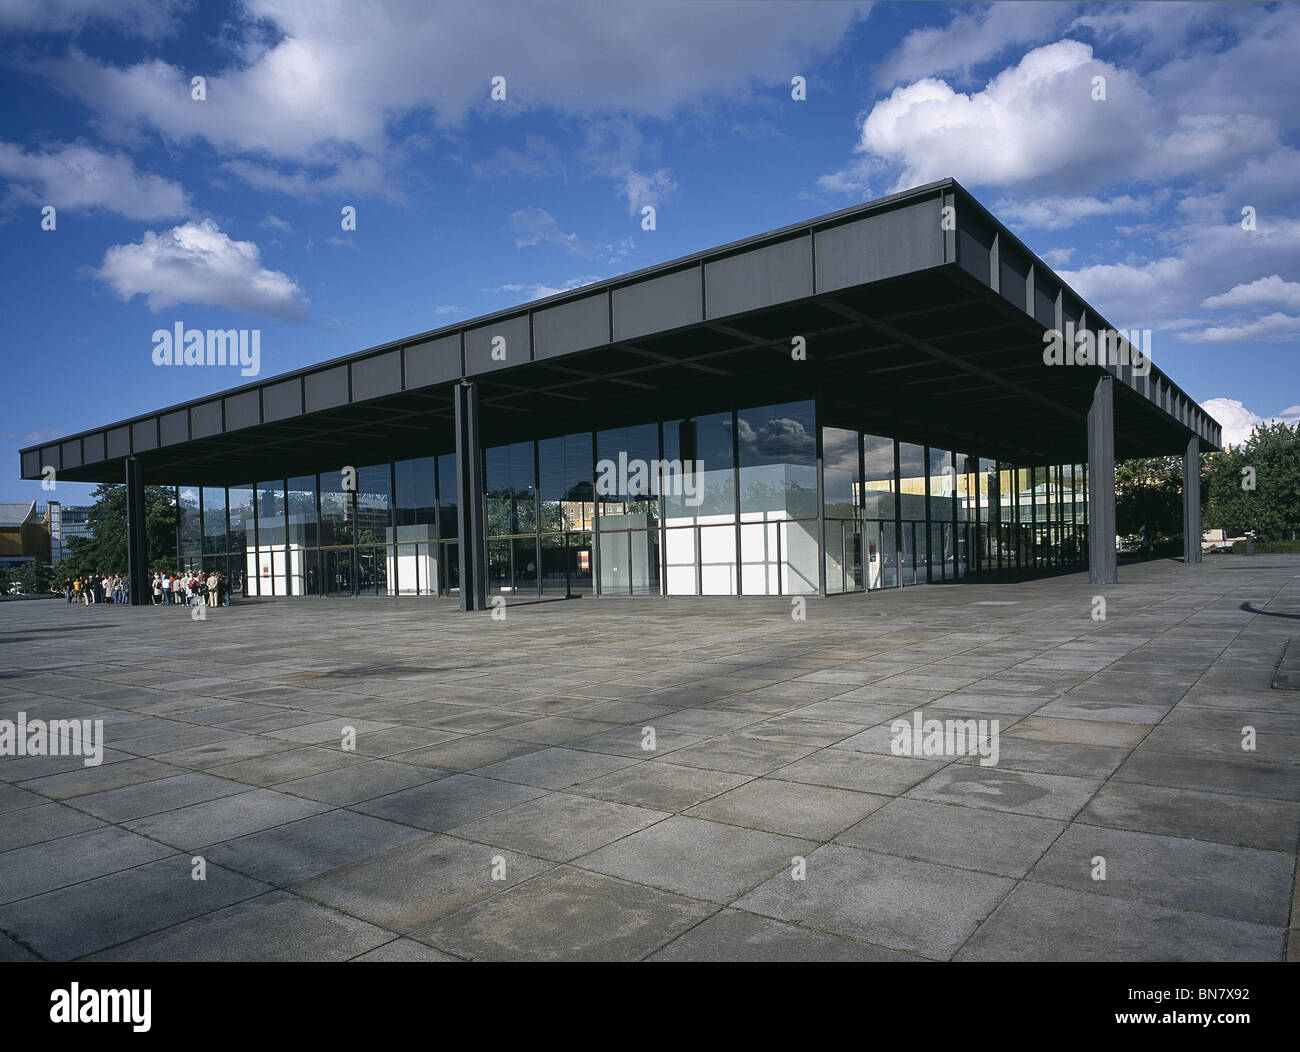 Mies Van Der Rohe Berlin Mies Van Der Rohe High Resolution Stock Photography And Images - Alamy